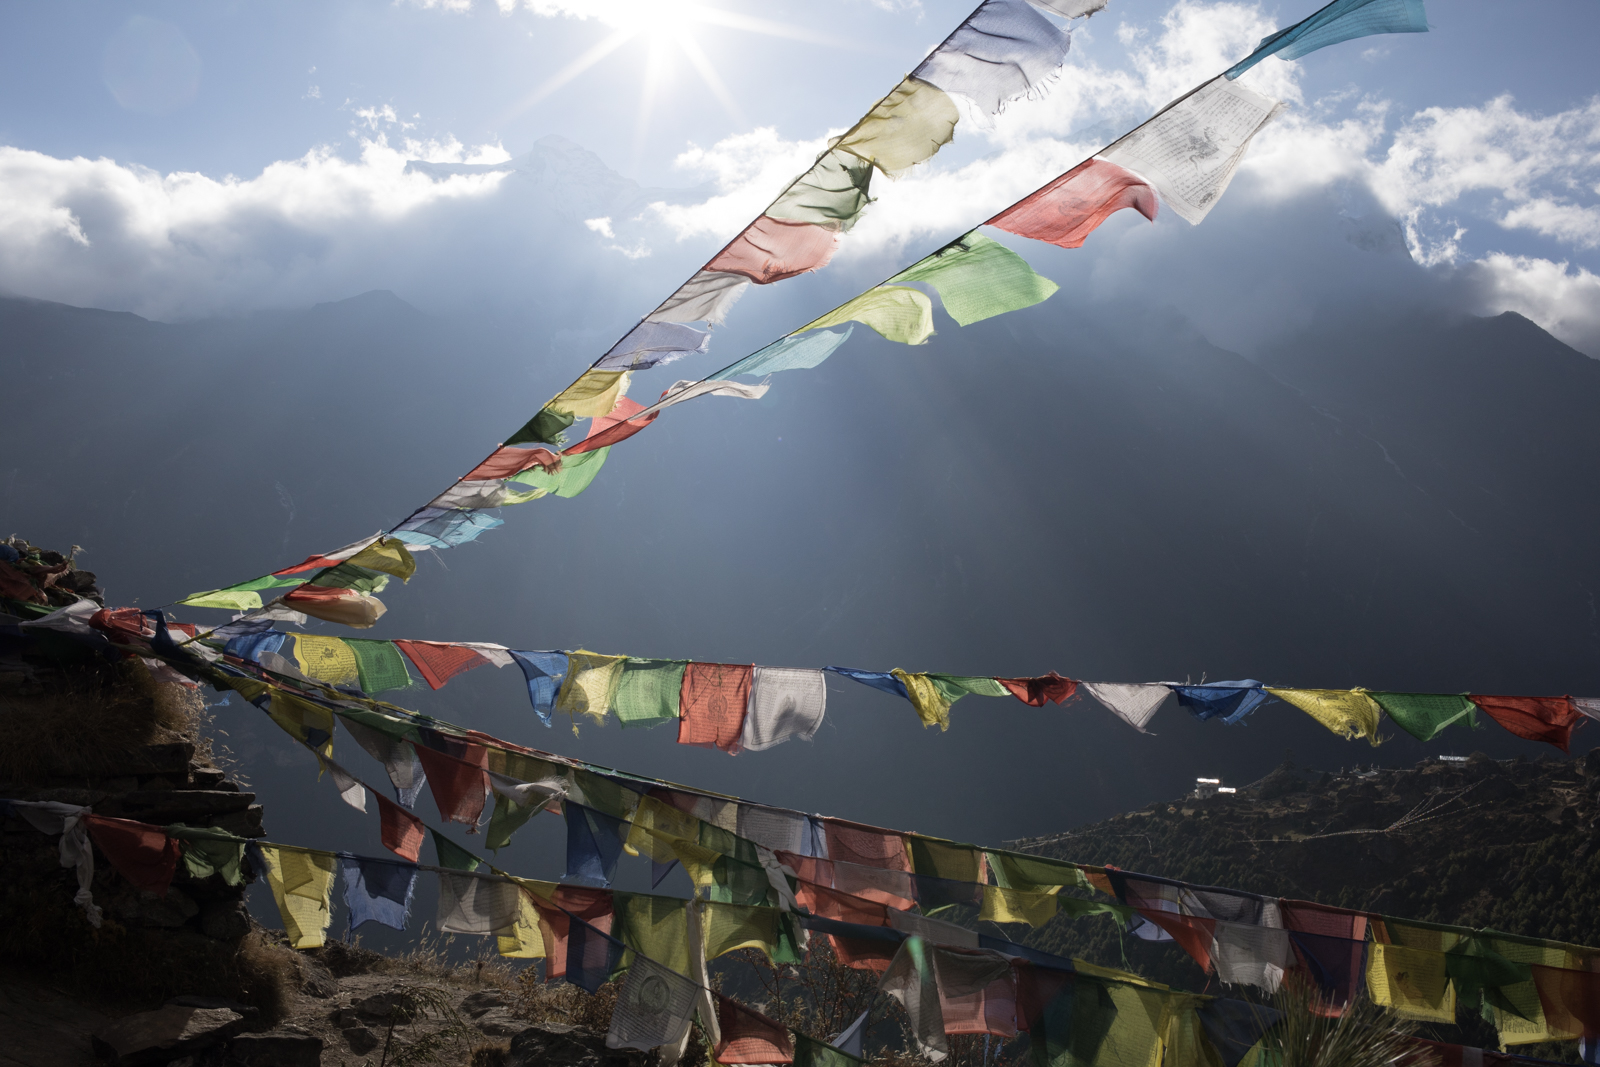 Prayer flags fly high on a ridge over Namche.